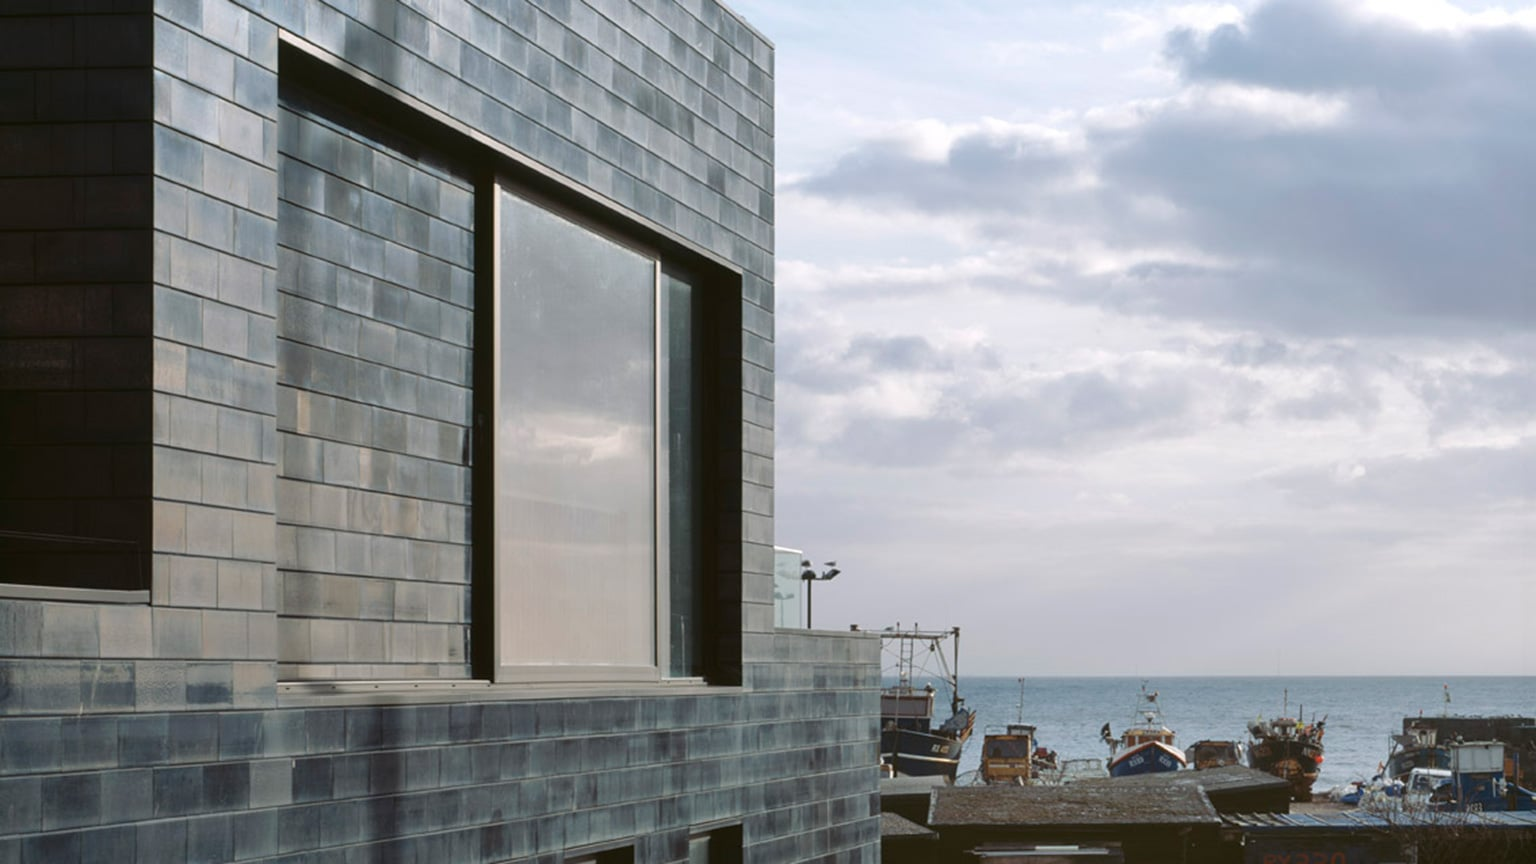 Jerwood Gallery is covered with 8,000 black ceramic tiles which were hand glazed in Kent - © Ioana Marinescu